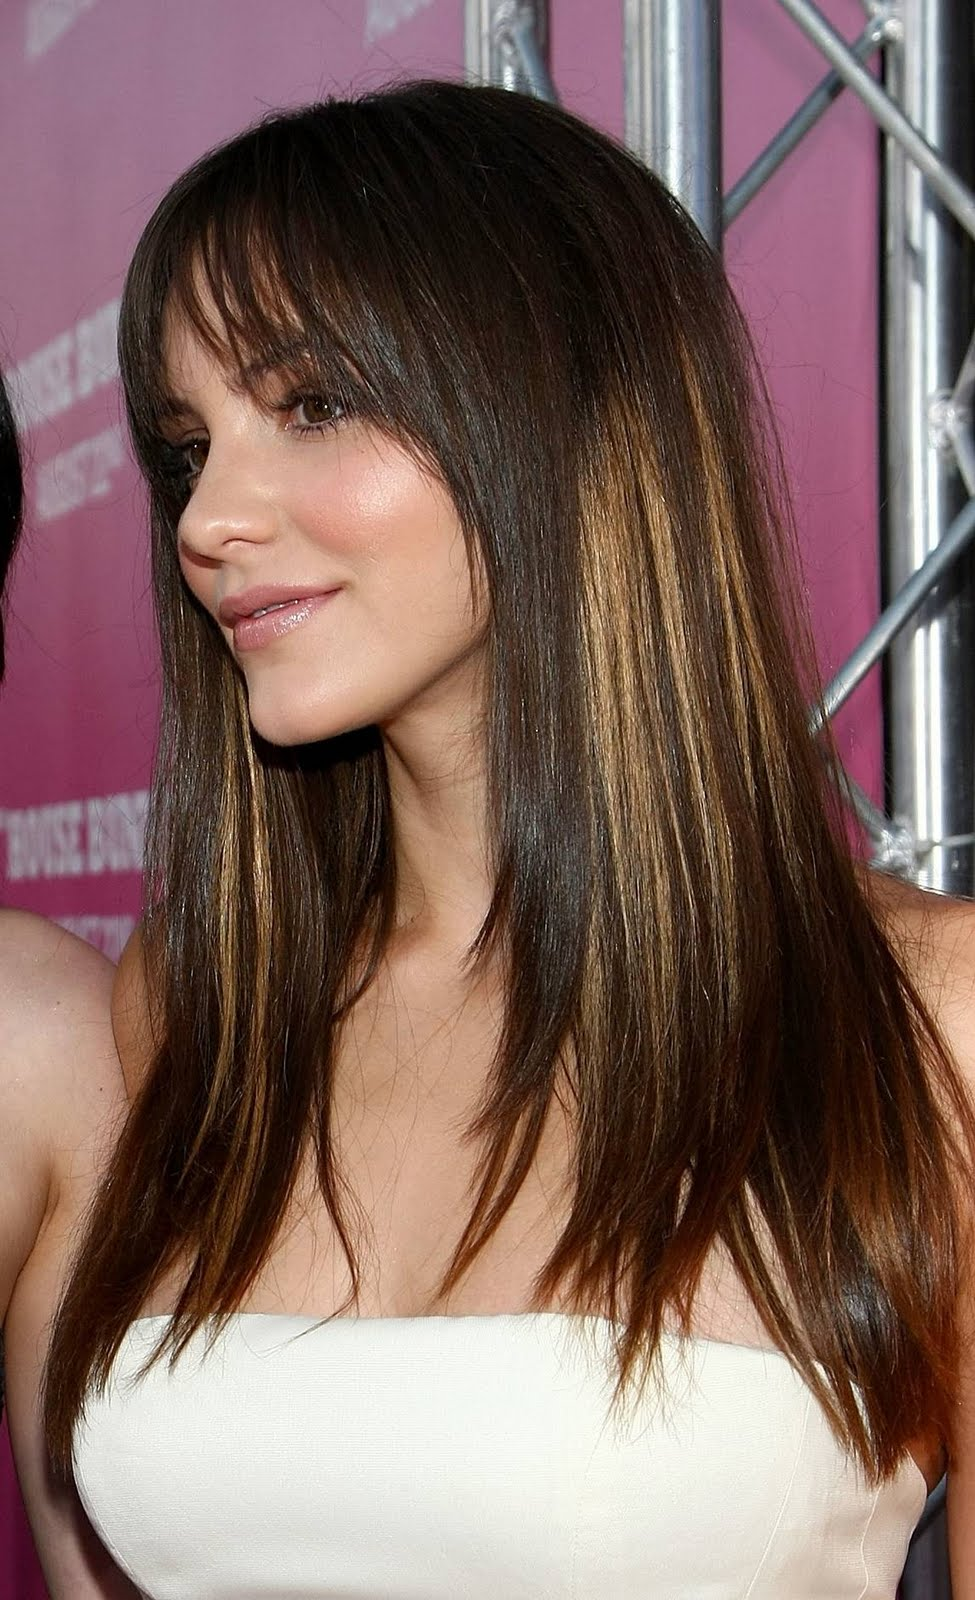 Bangs Romance Hairstyles 2013, Long Hairstyle 2013, Hairstyle 2013, New Long Hairstyle 2013, Celebrity Long Romance Hairstyles 2075